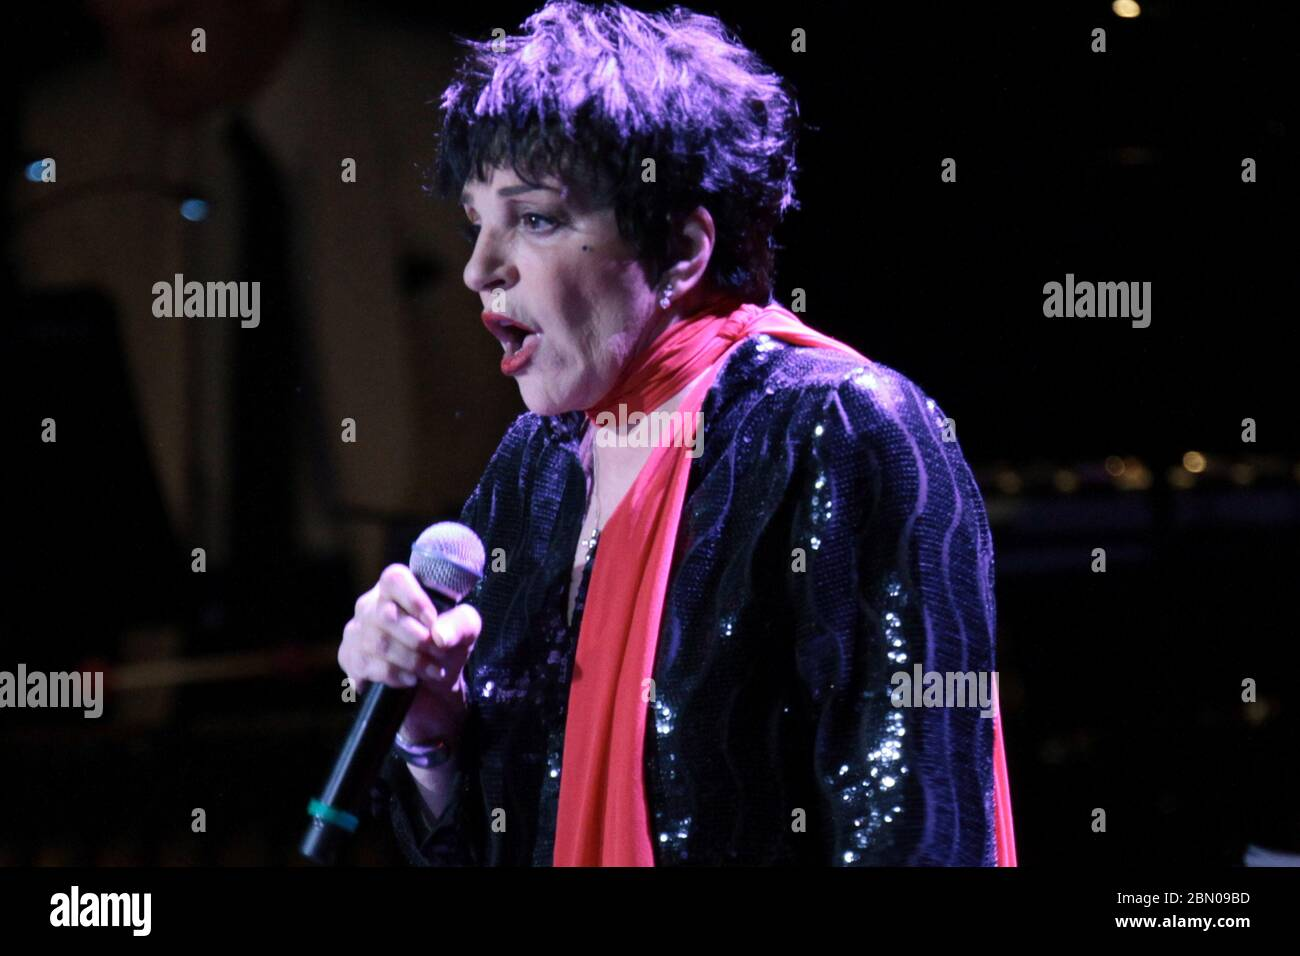 Liza High Resolution Stock Photography and Images - Alamy